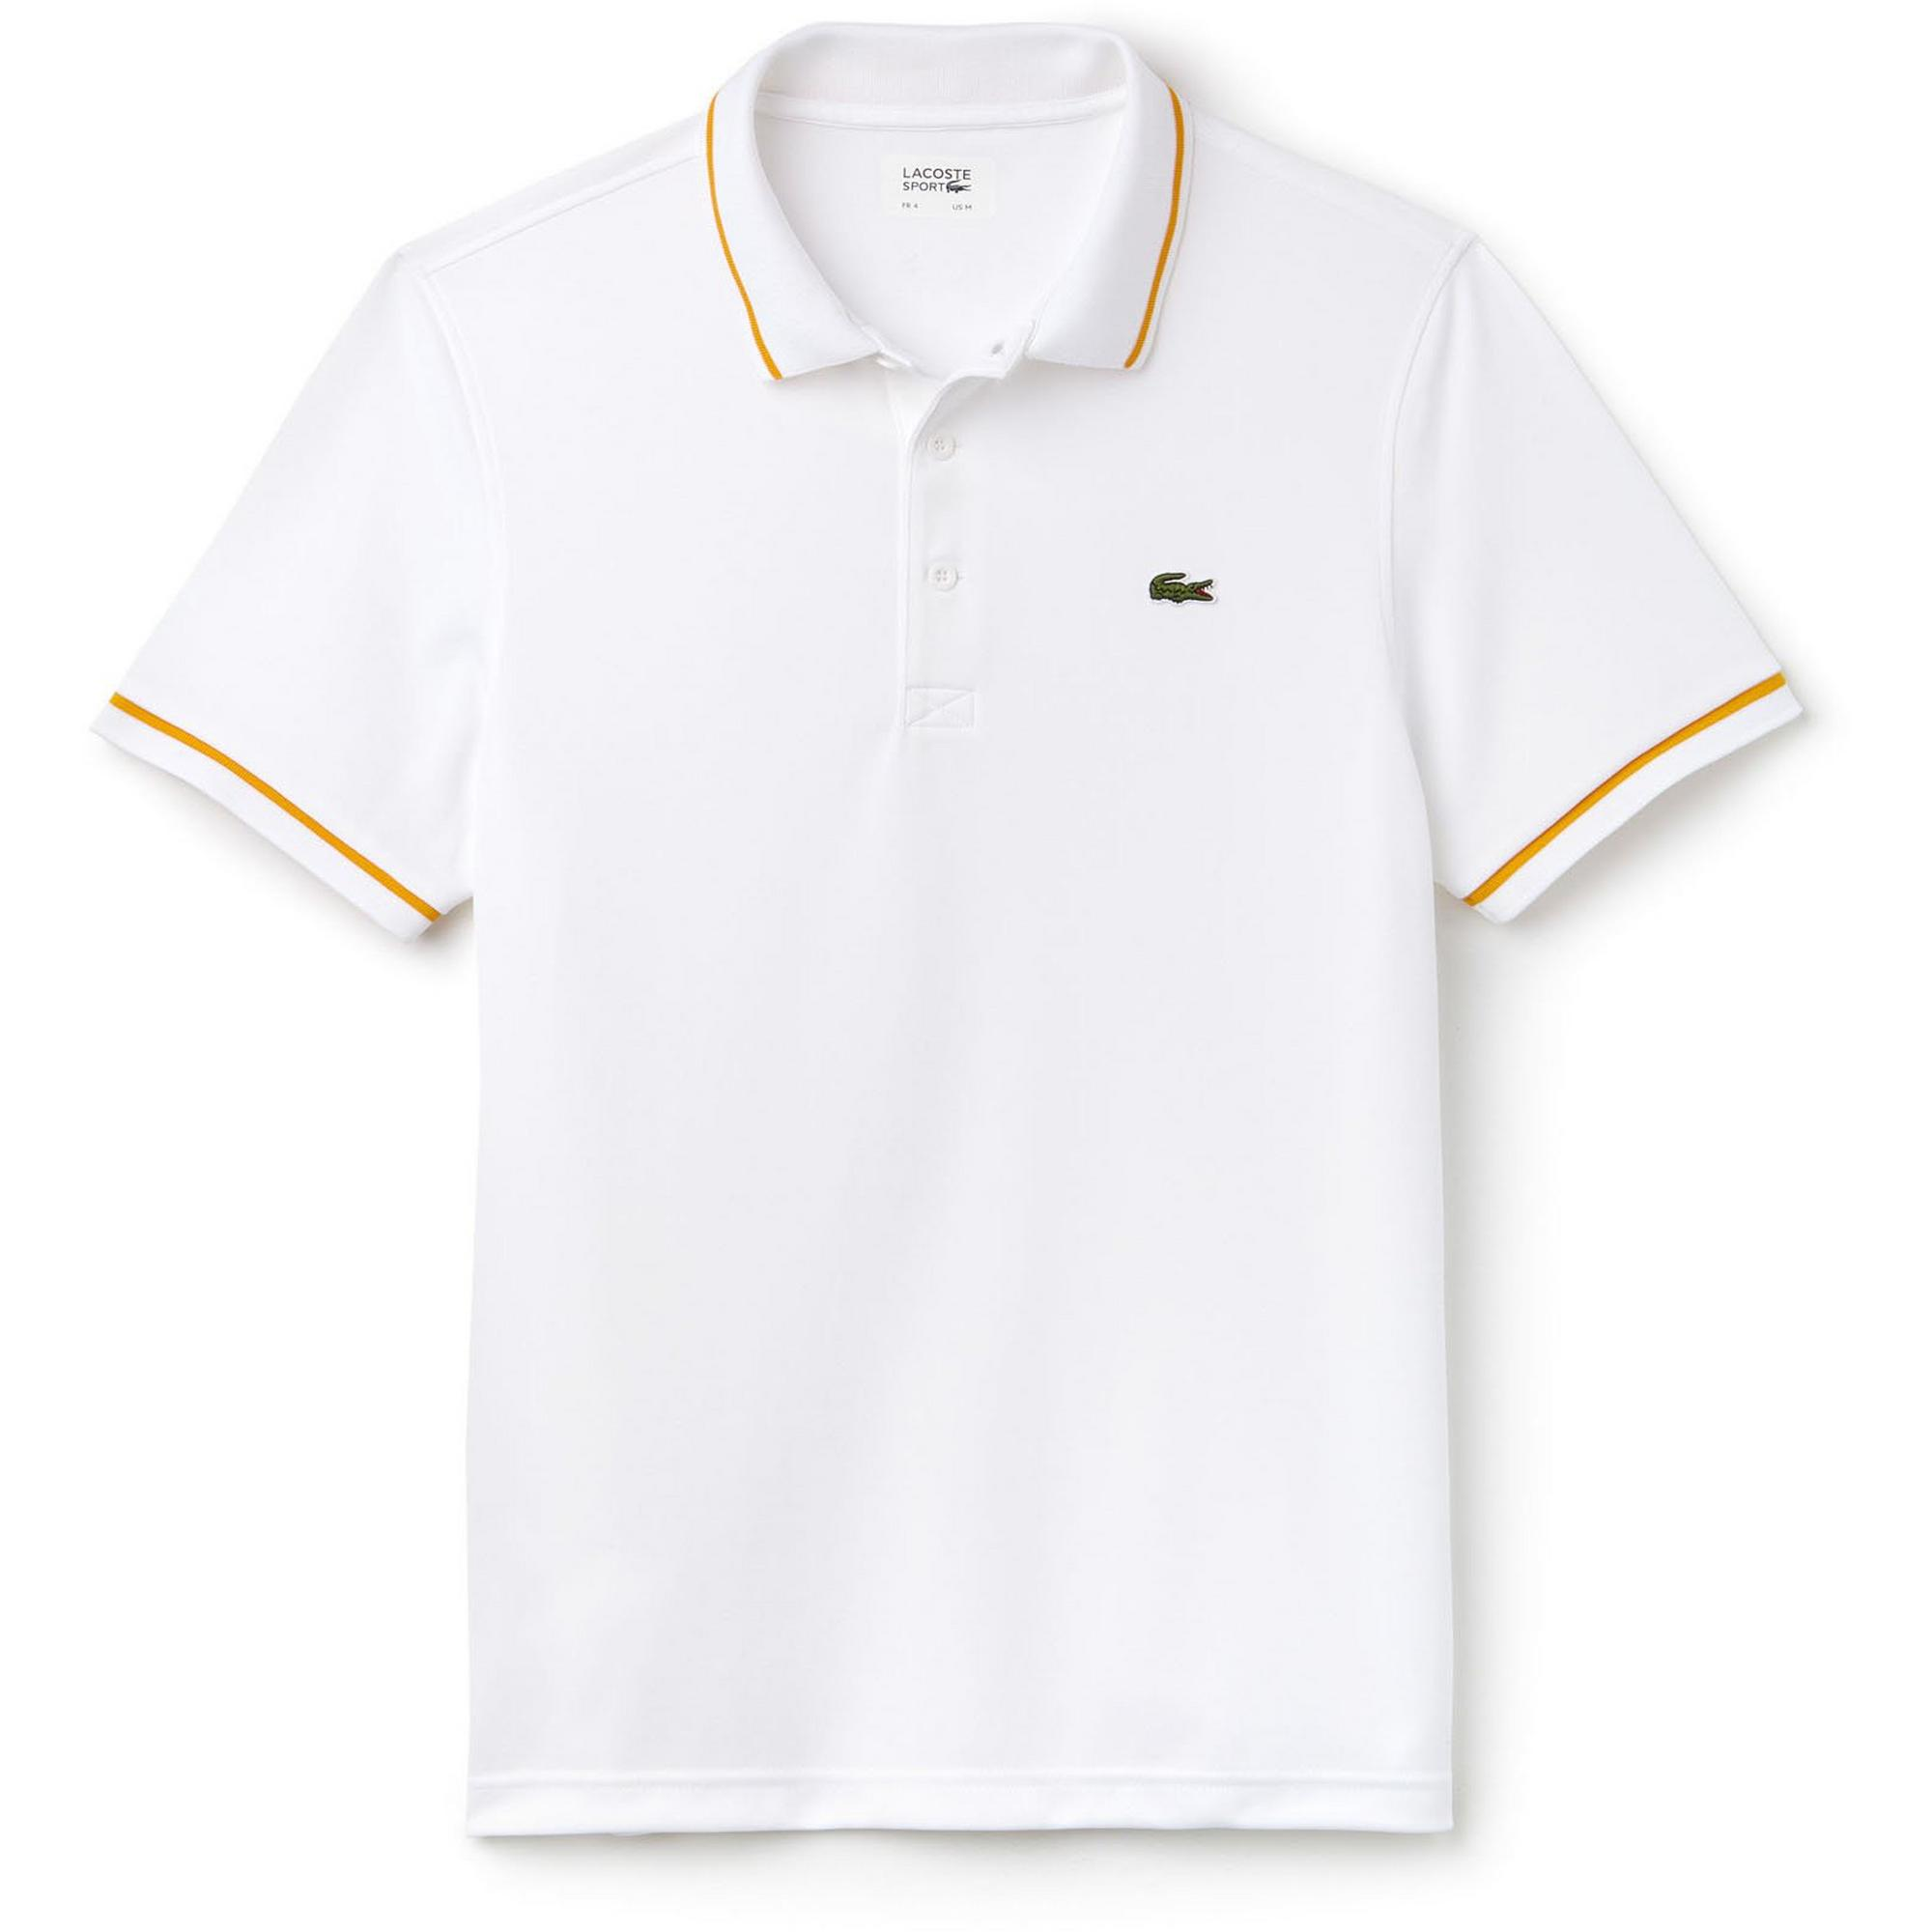 Men's Ultra-Dry Piping Pique Short Sleeve Polo